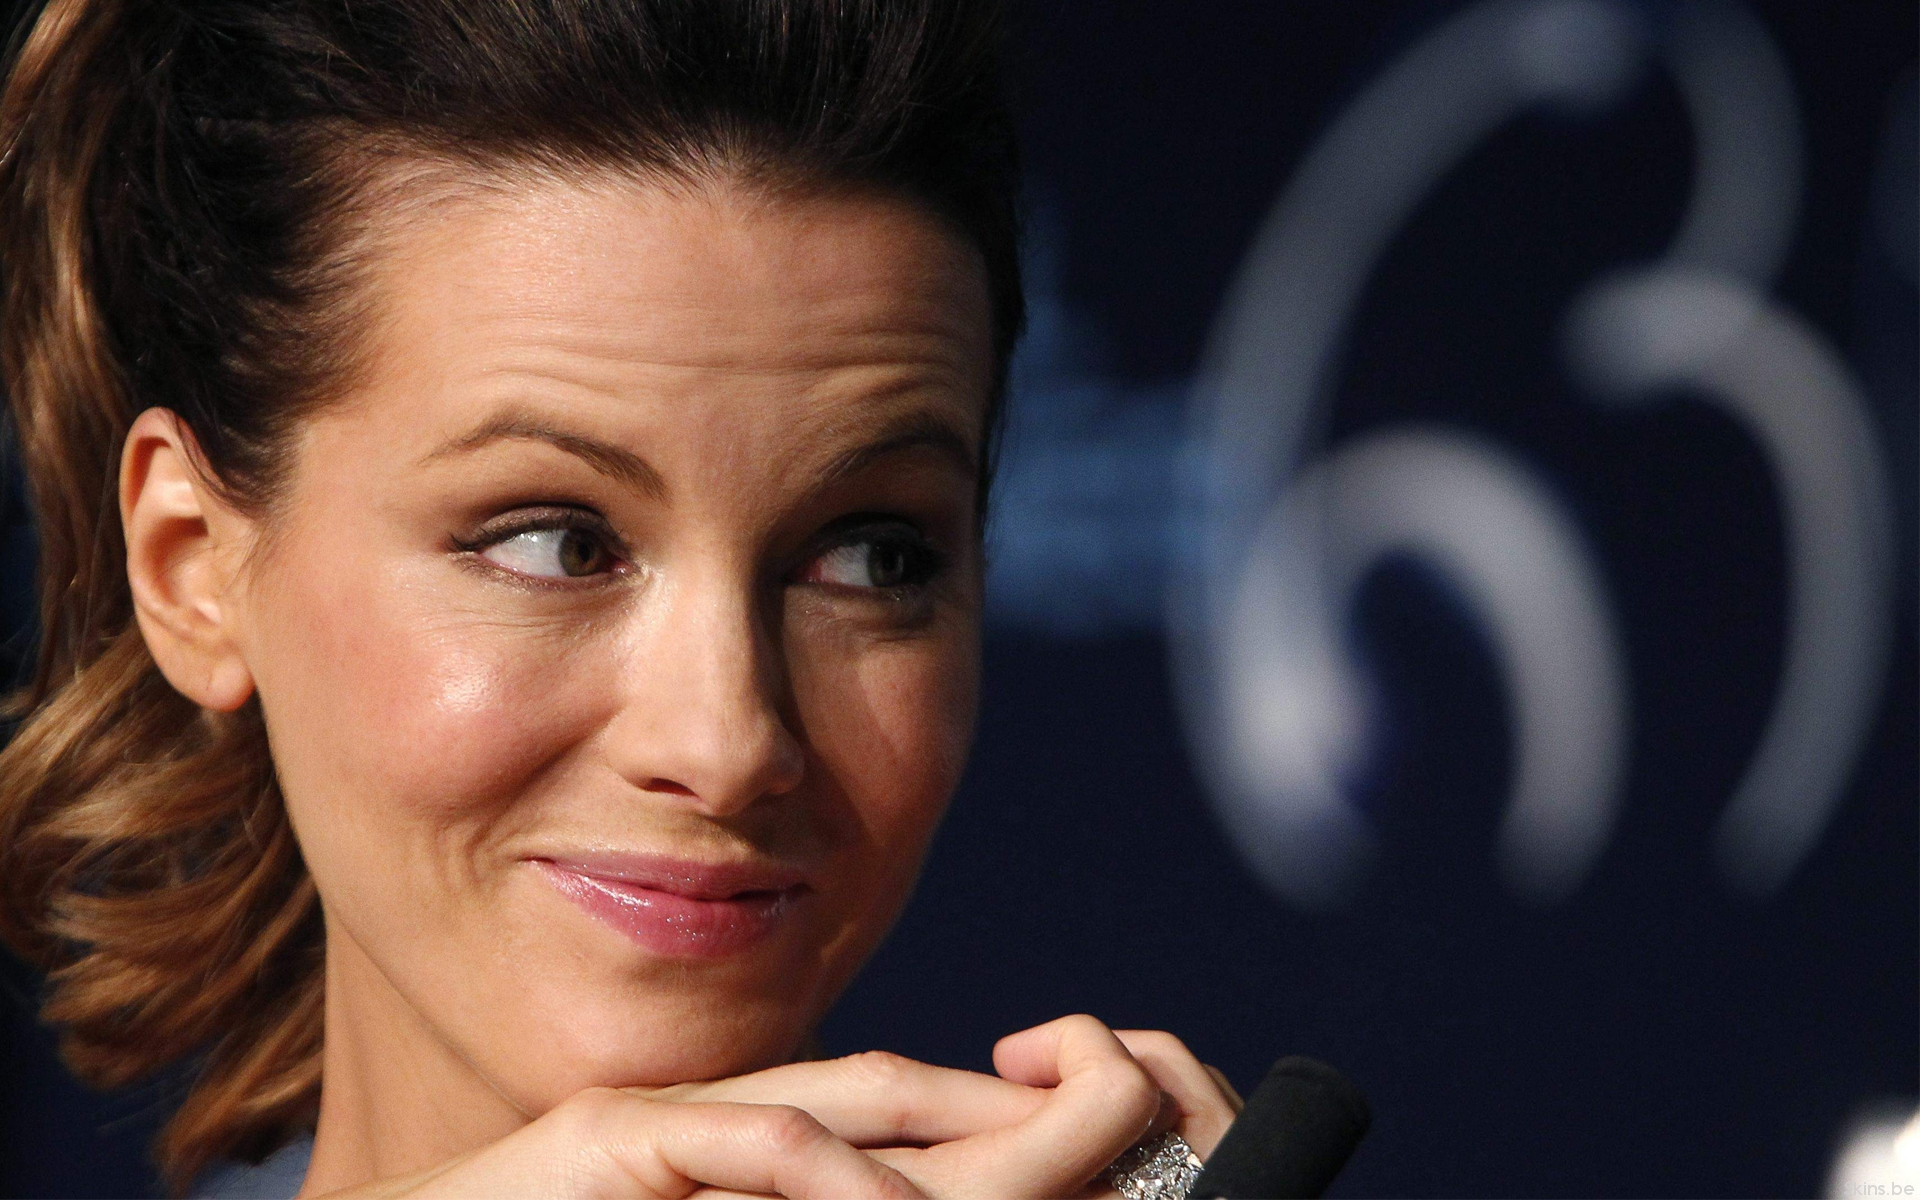 kate beckinsale wallpapers kate beckinsale stock photos